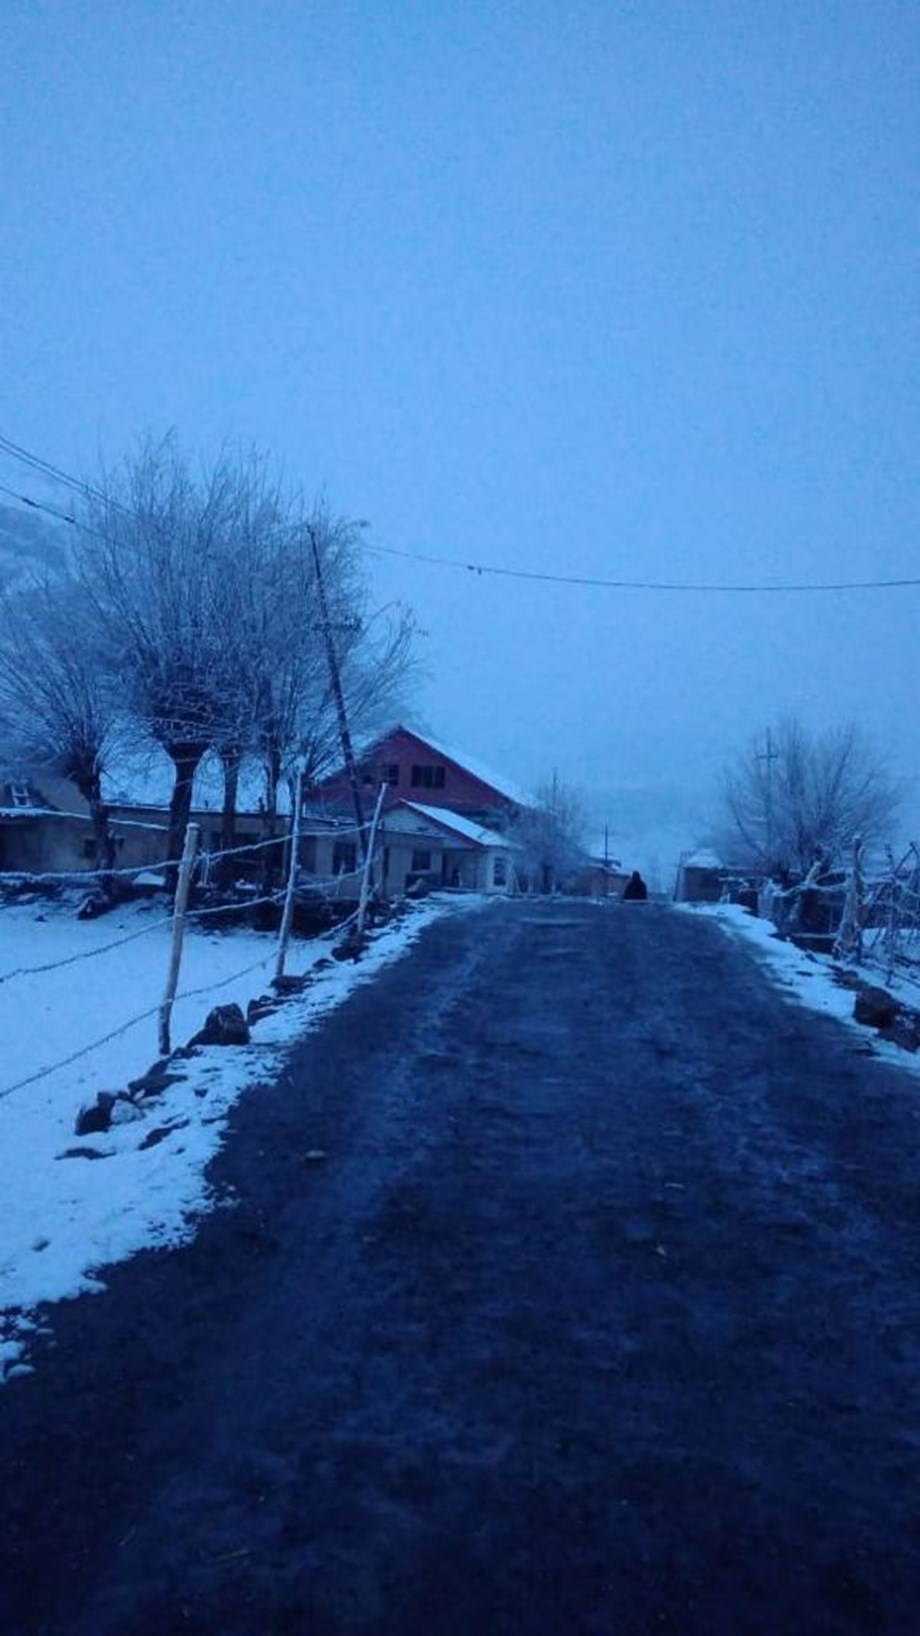 J&K declares heavy snowfall as state-specific 'special natural calamity'